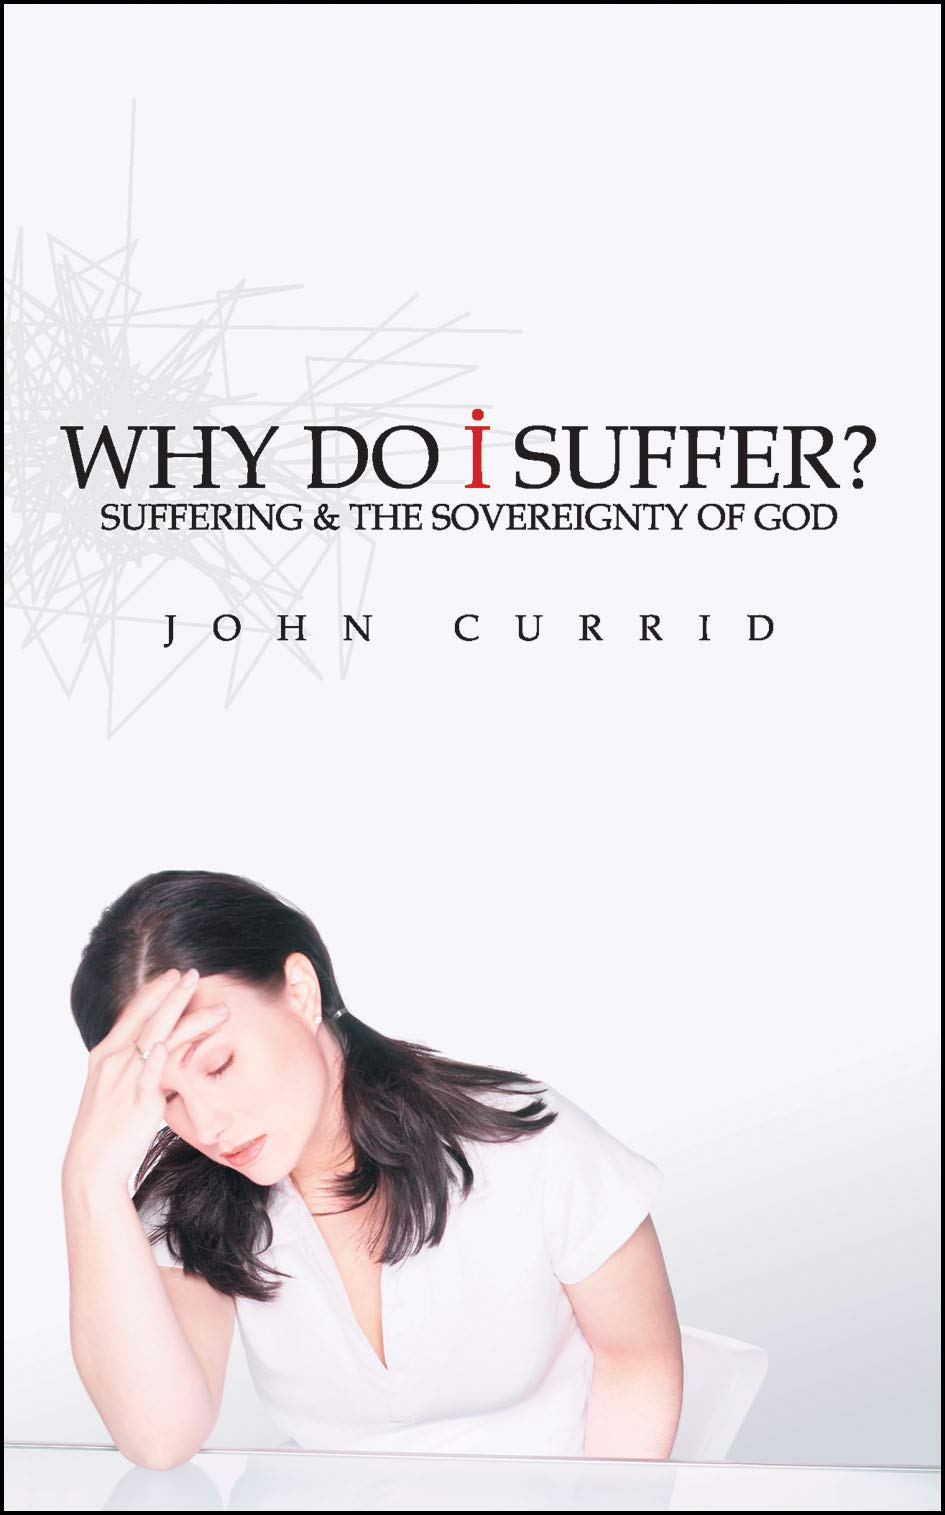 Why Do I Suffer?: Suffering & the Sovereignty of God: John Currid ...